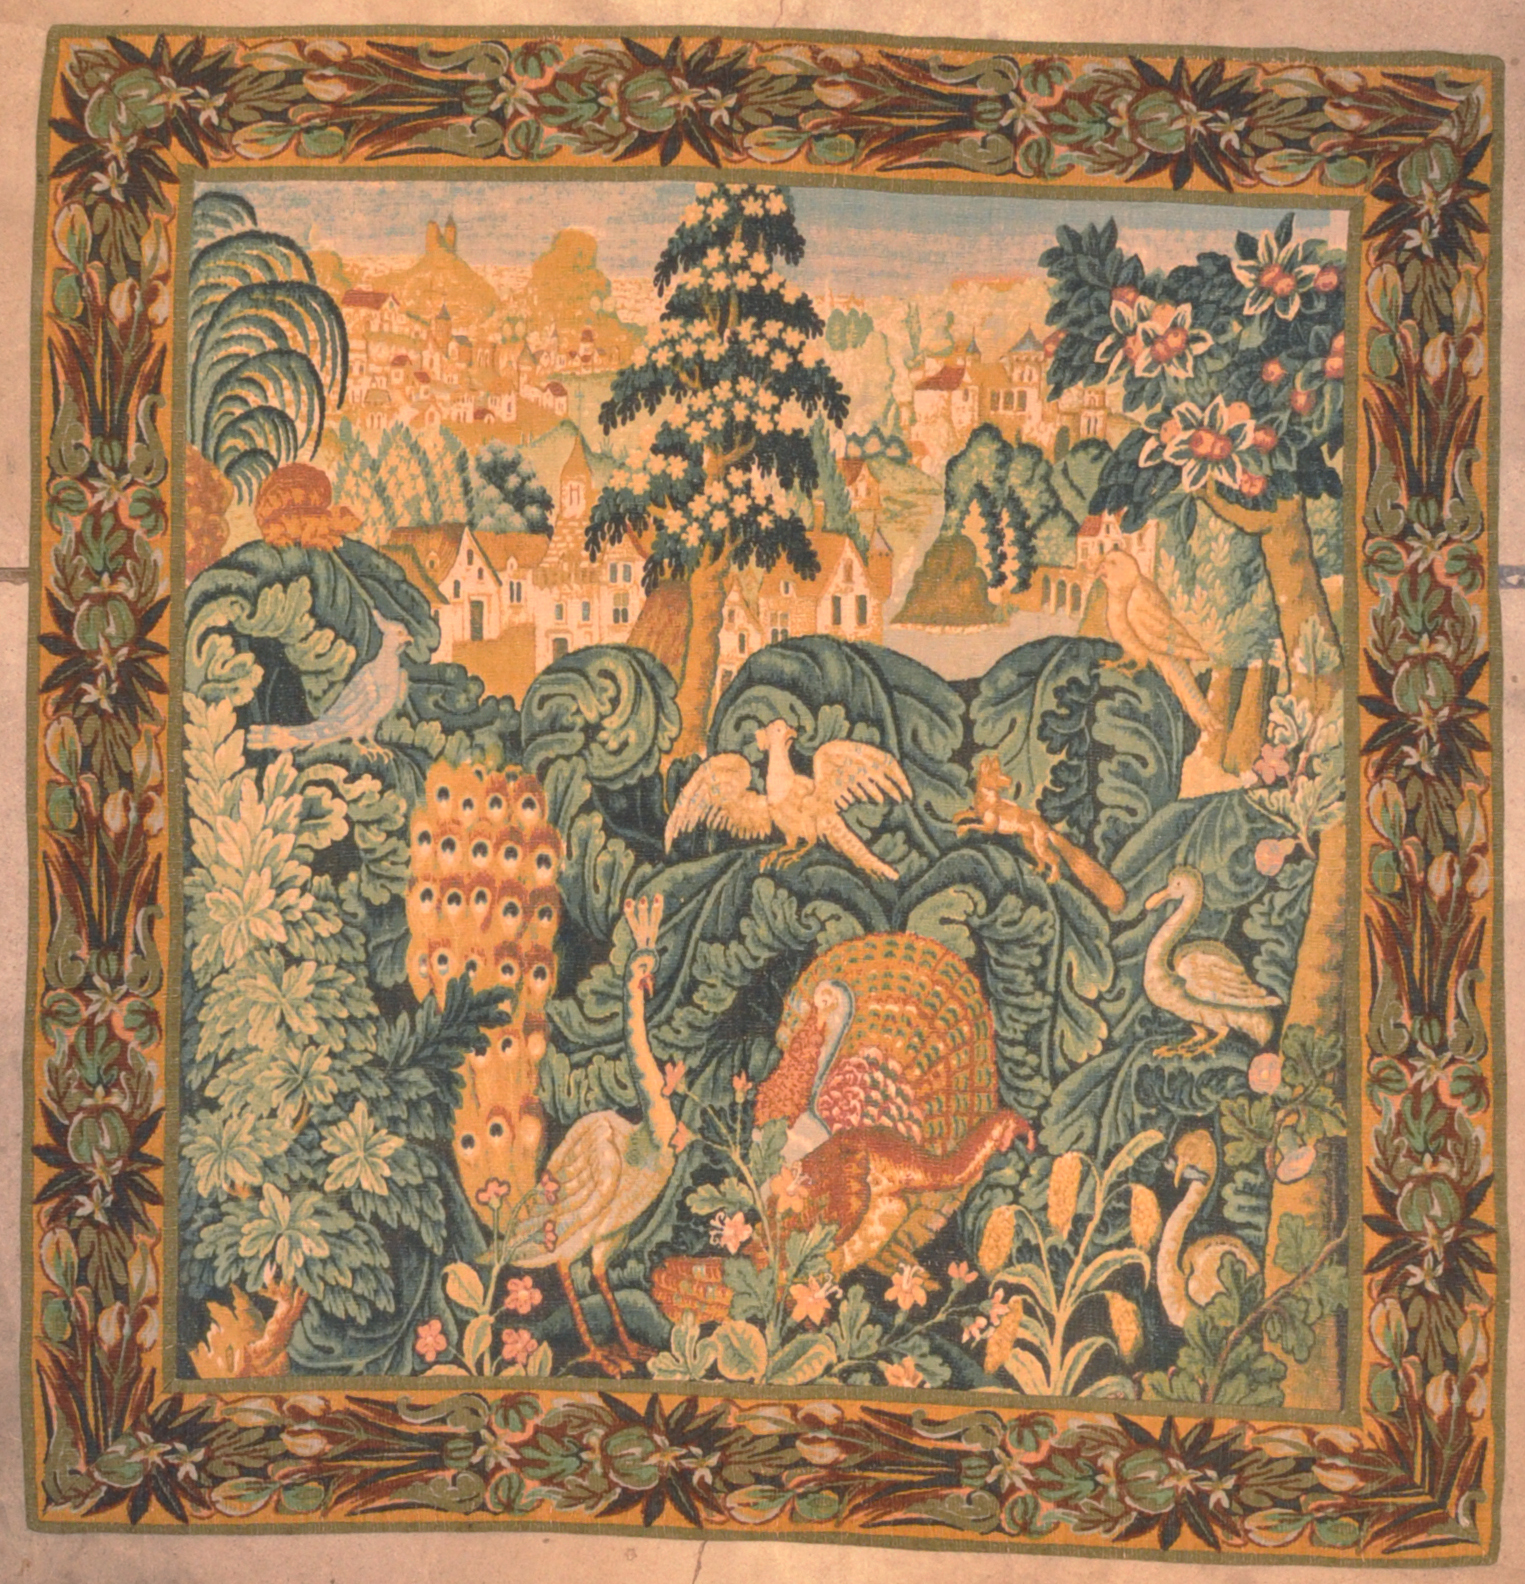 Antique European Tapestry Santa Barbara Design Center